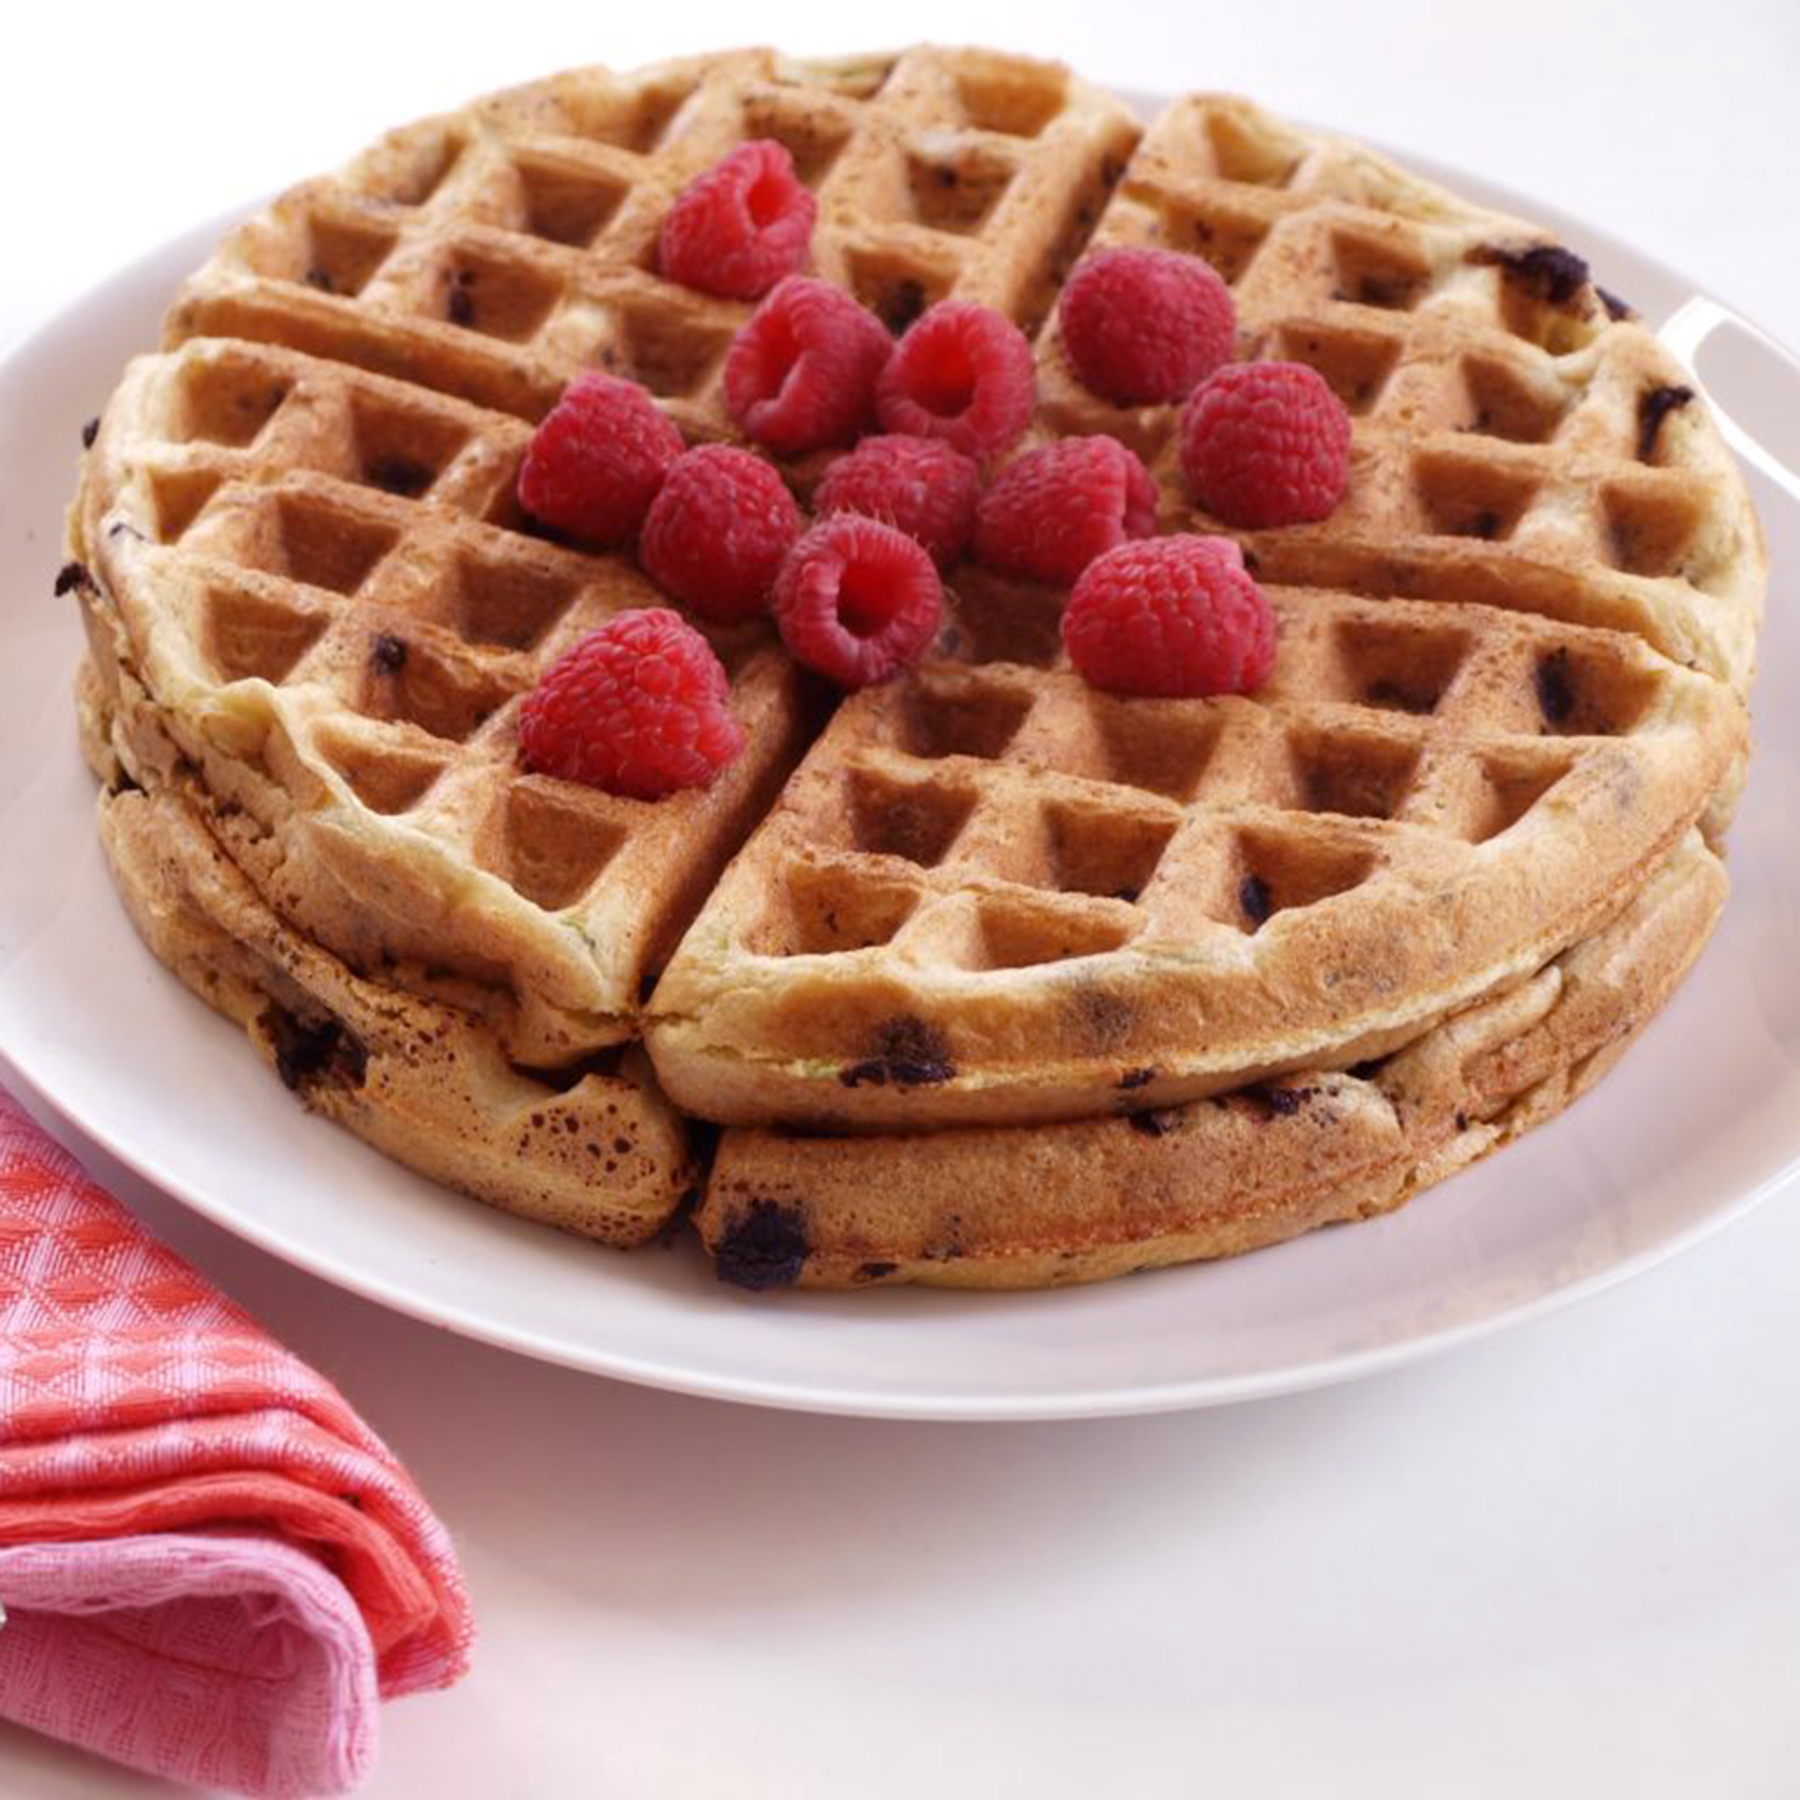 Grain-Free Paleo Zucchini Chocolate Chip Waffles